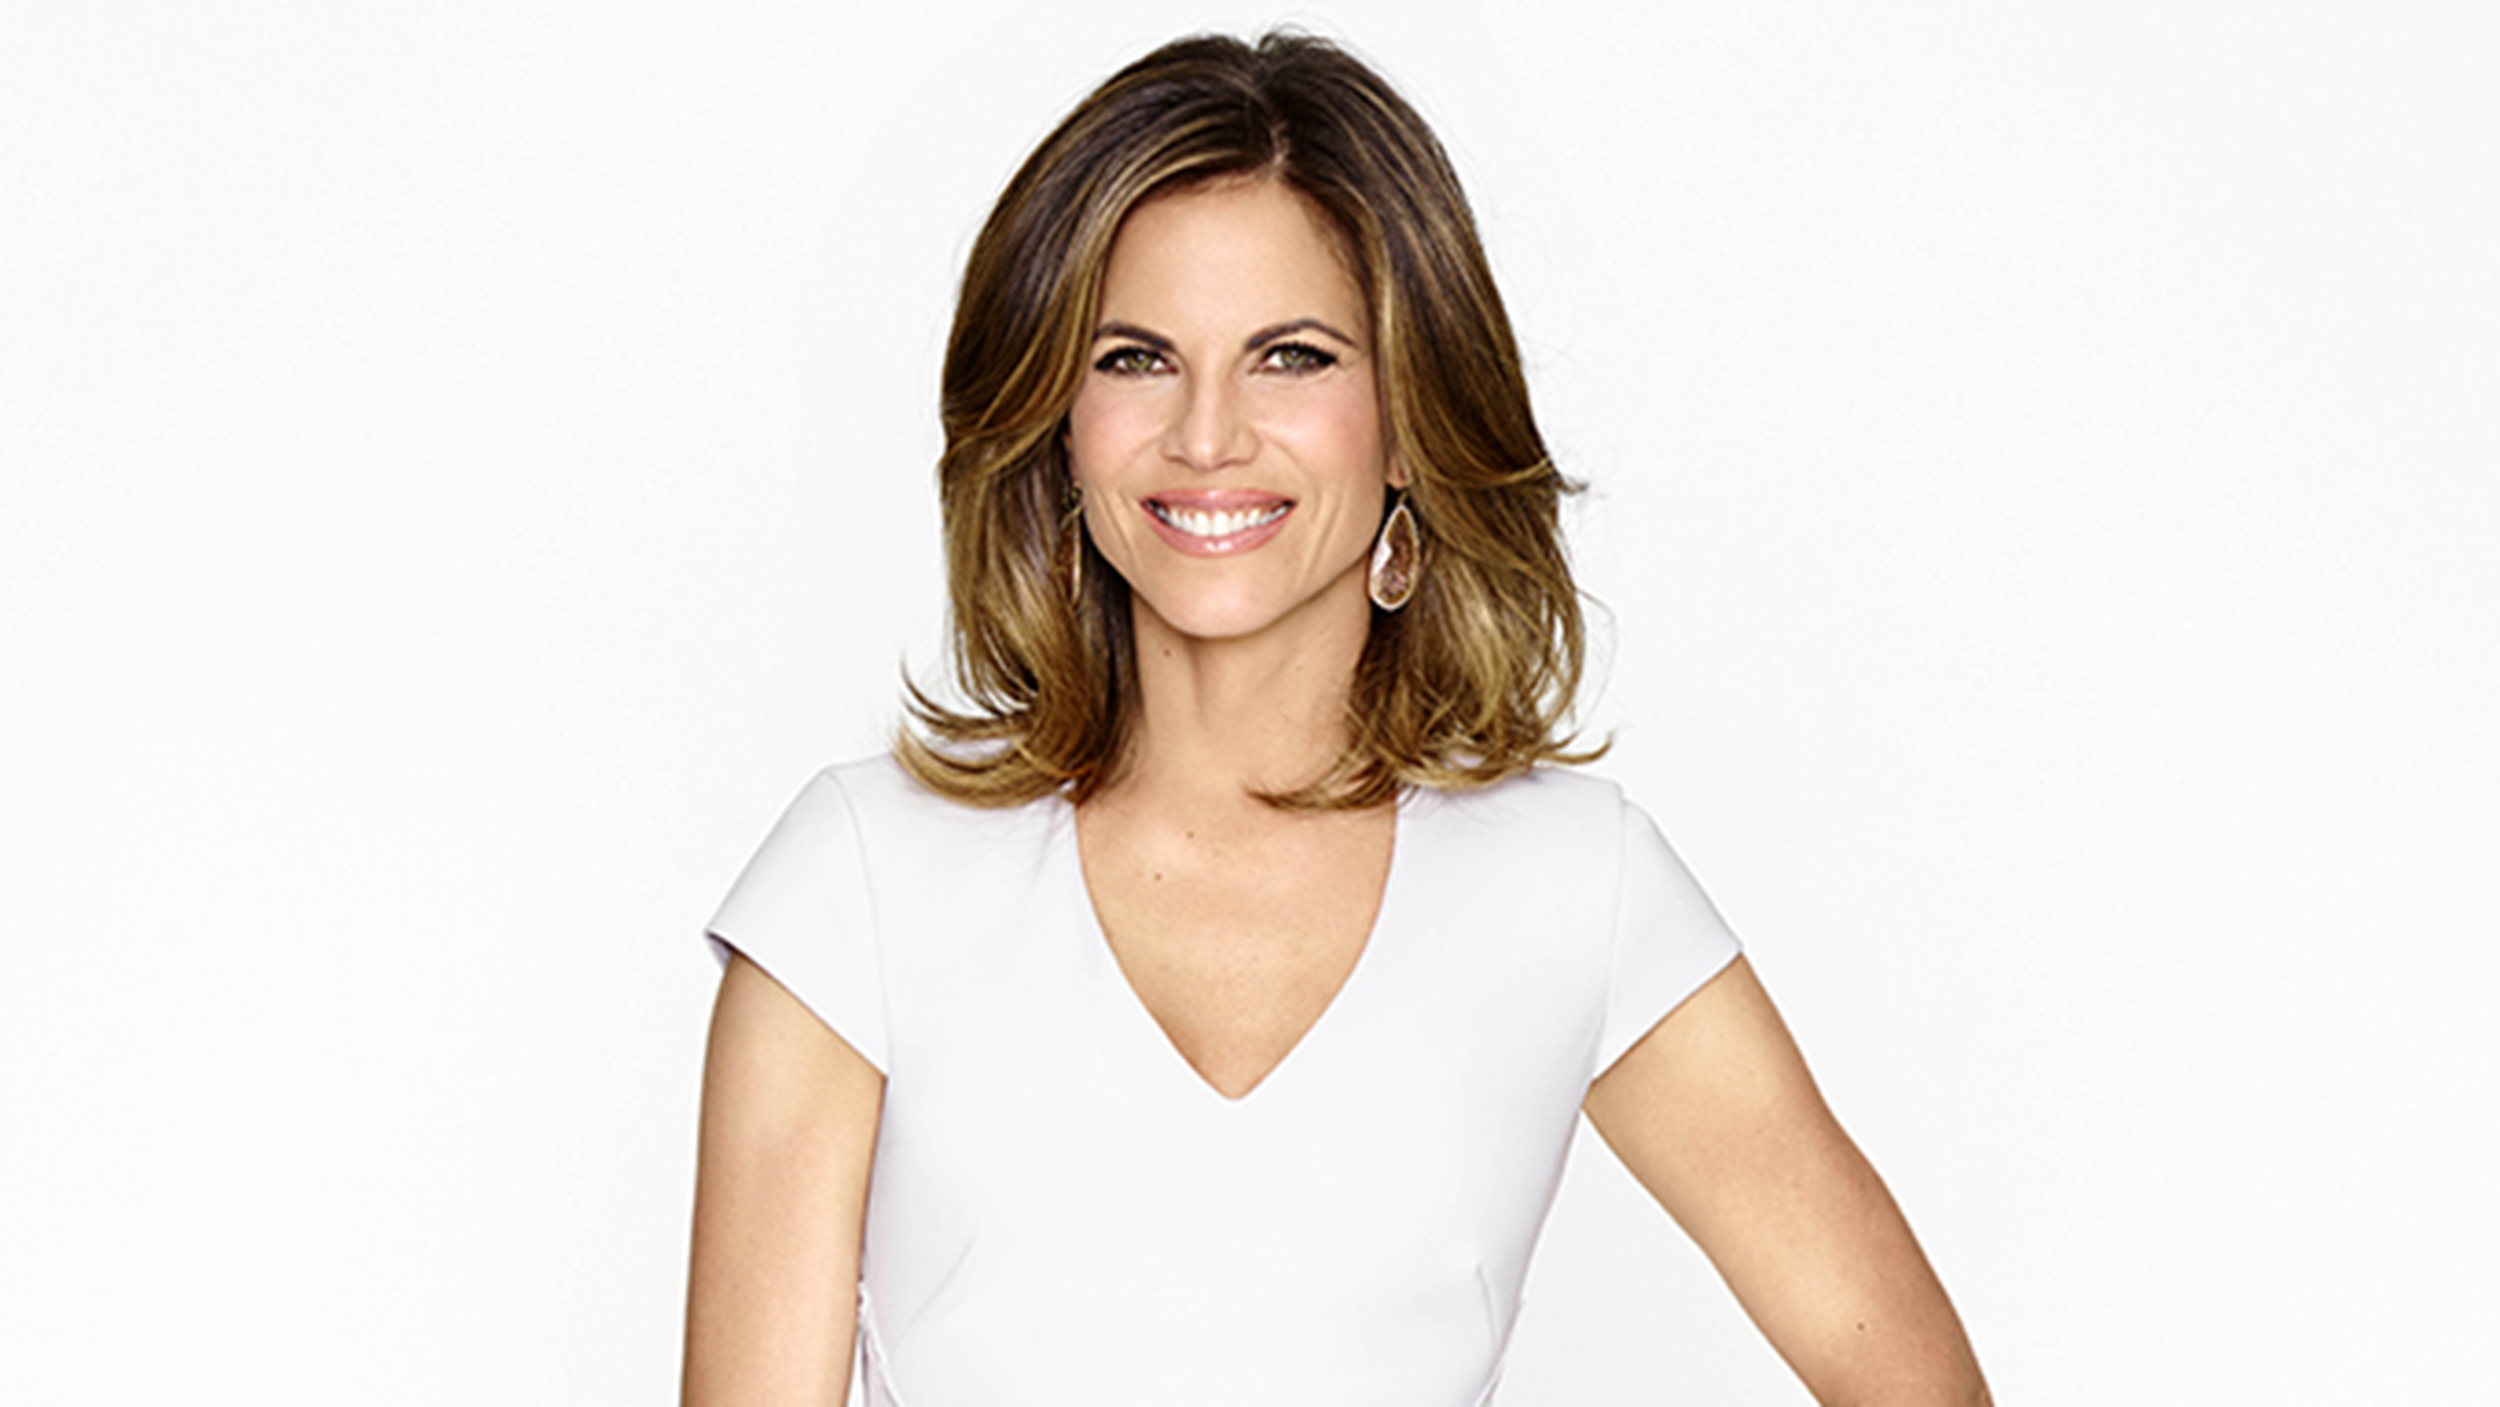 American journalist for NBC News; Natalie Morales